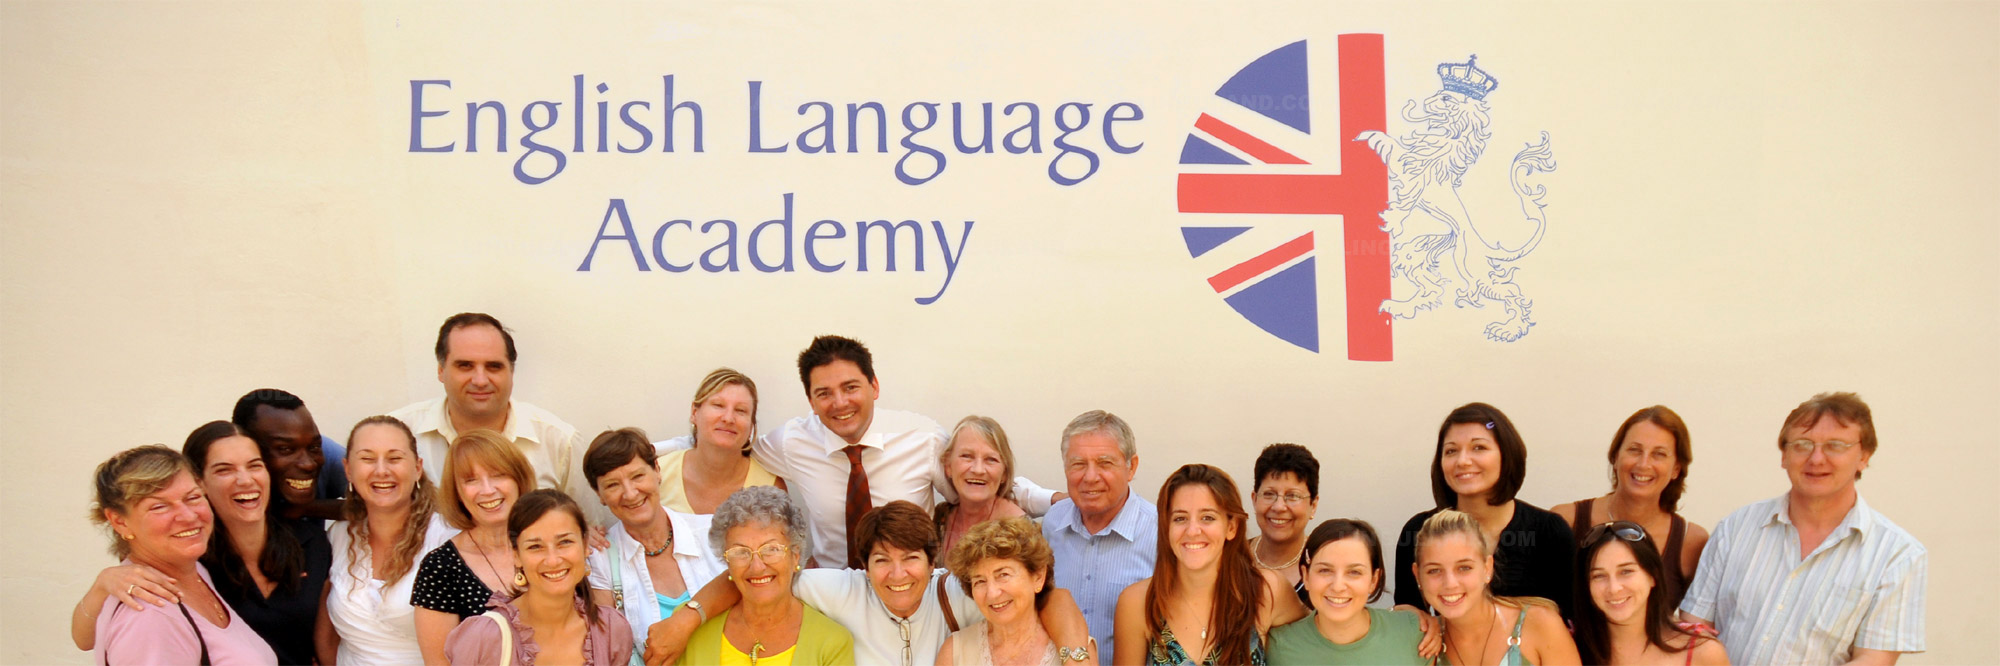 Academia de inglés: English Language Academy